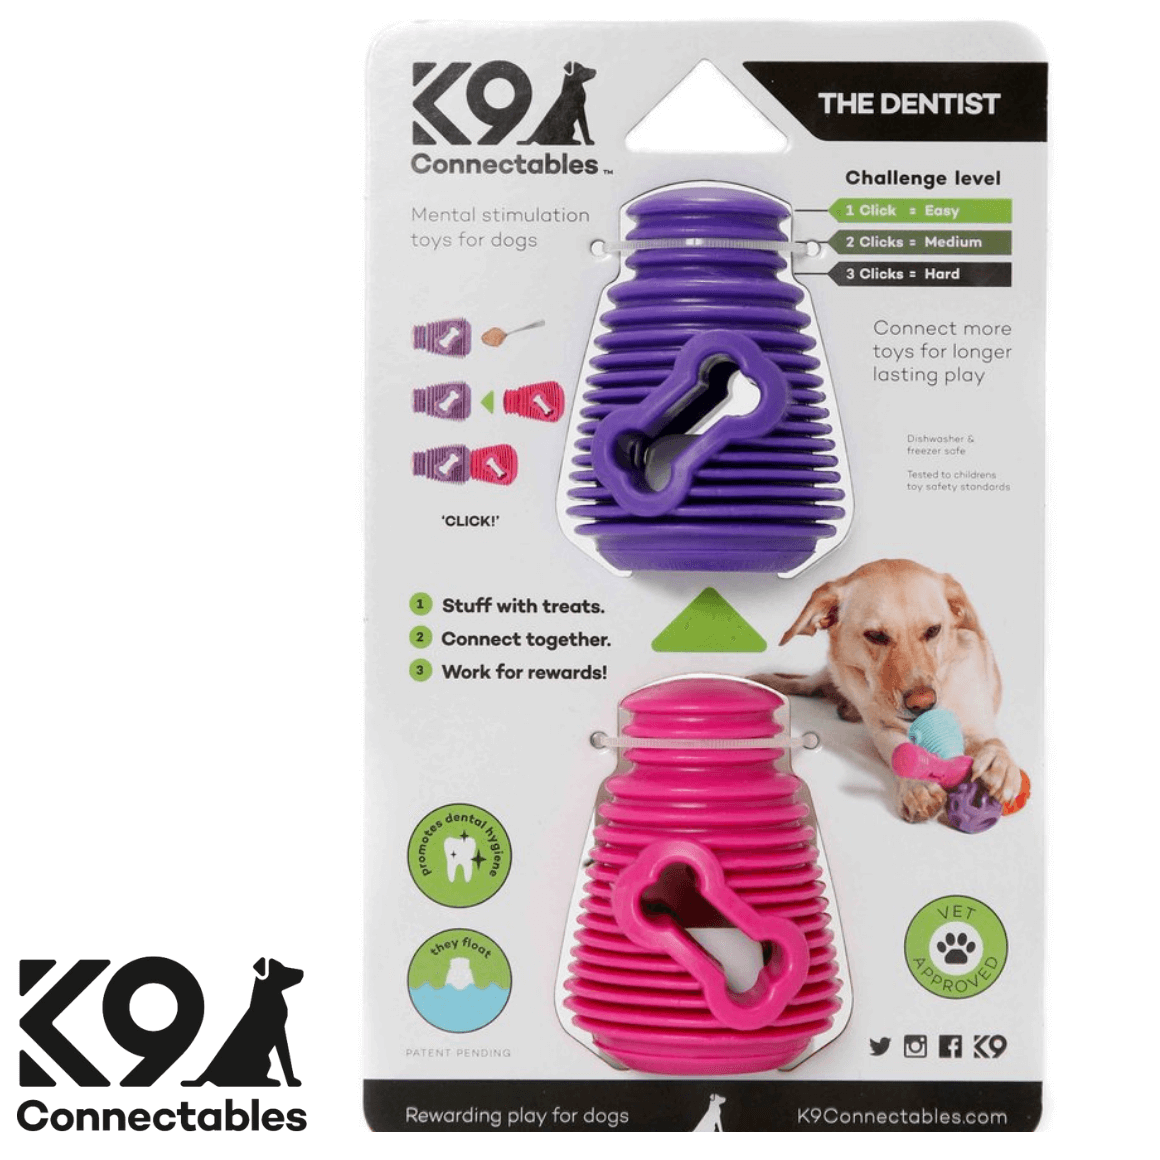 K9 Connectables Australia - The Denist Purple Pink